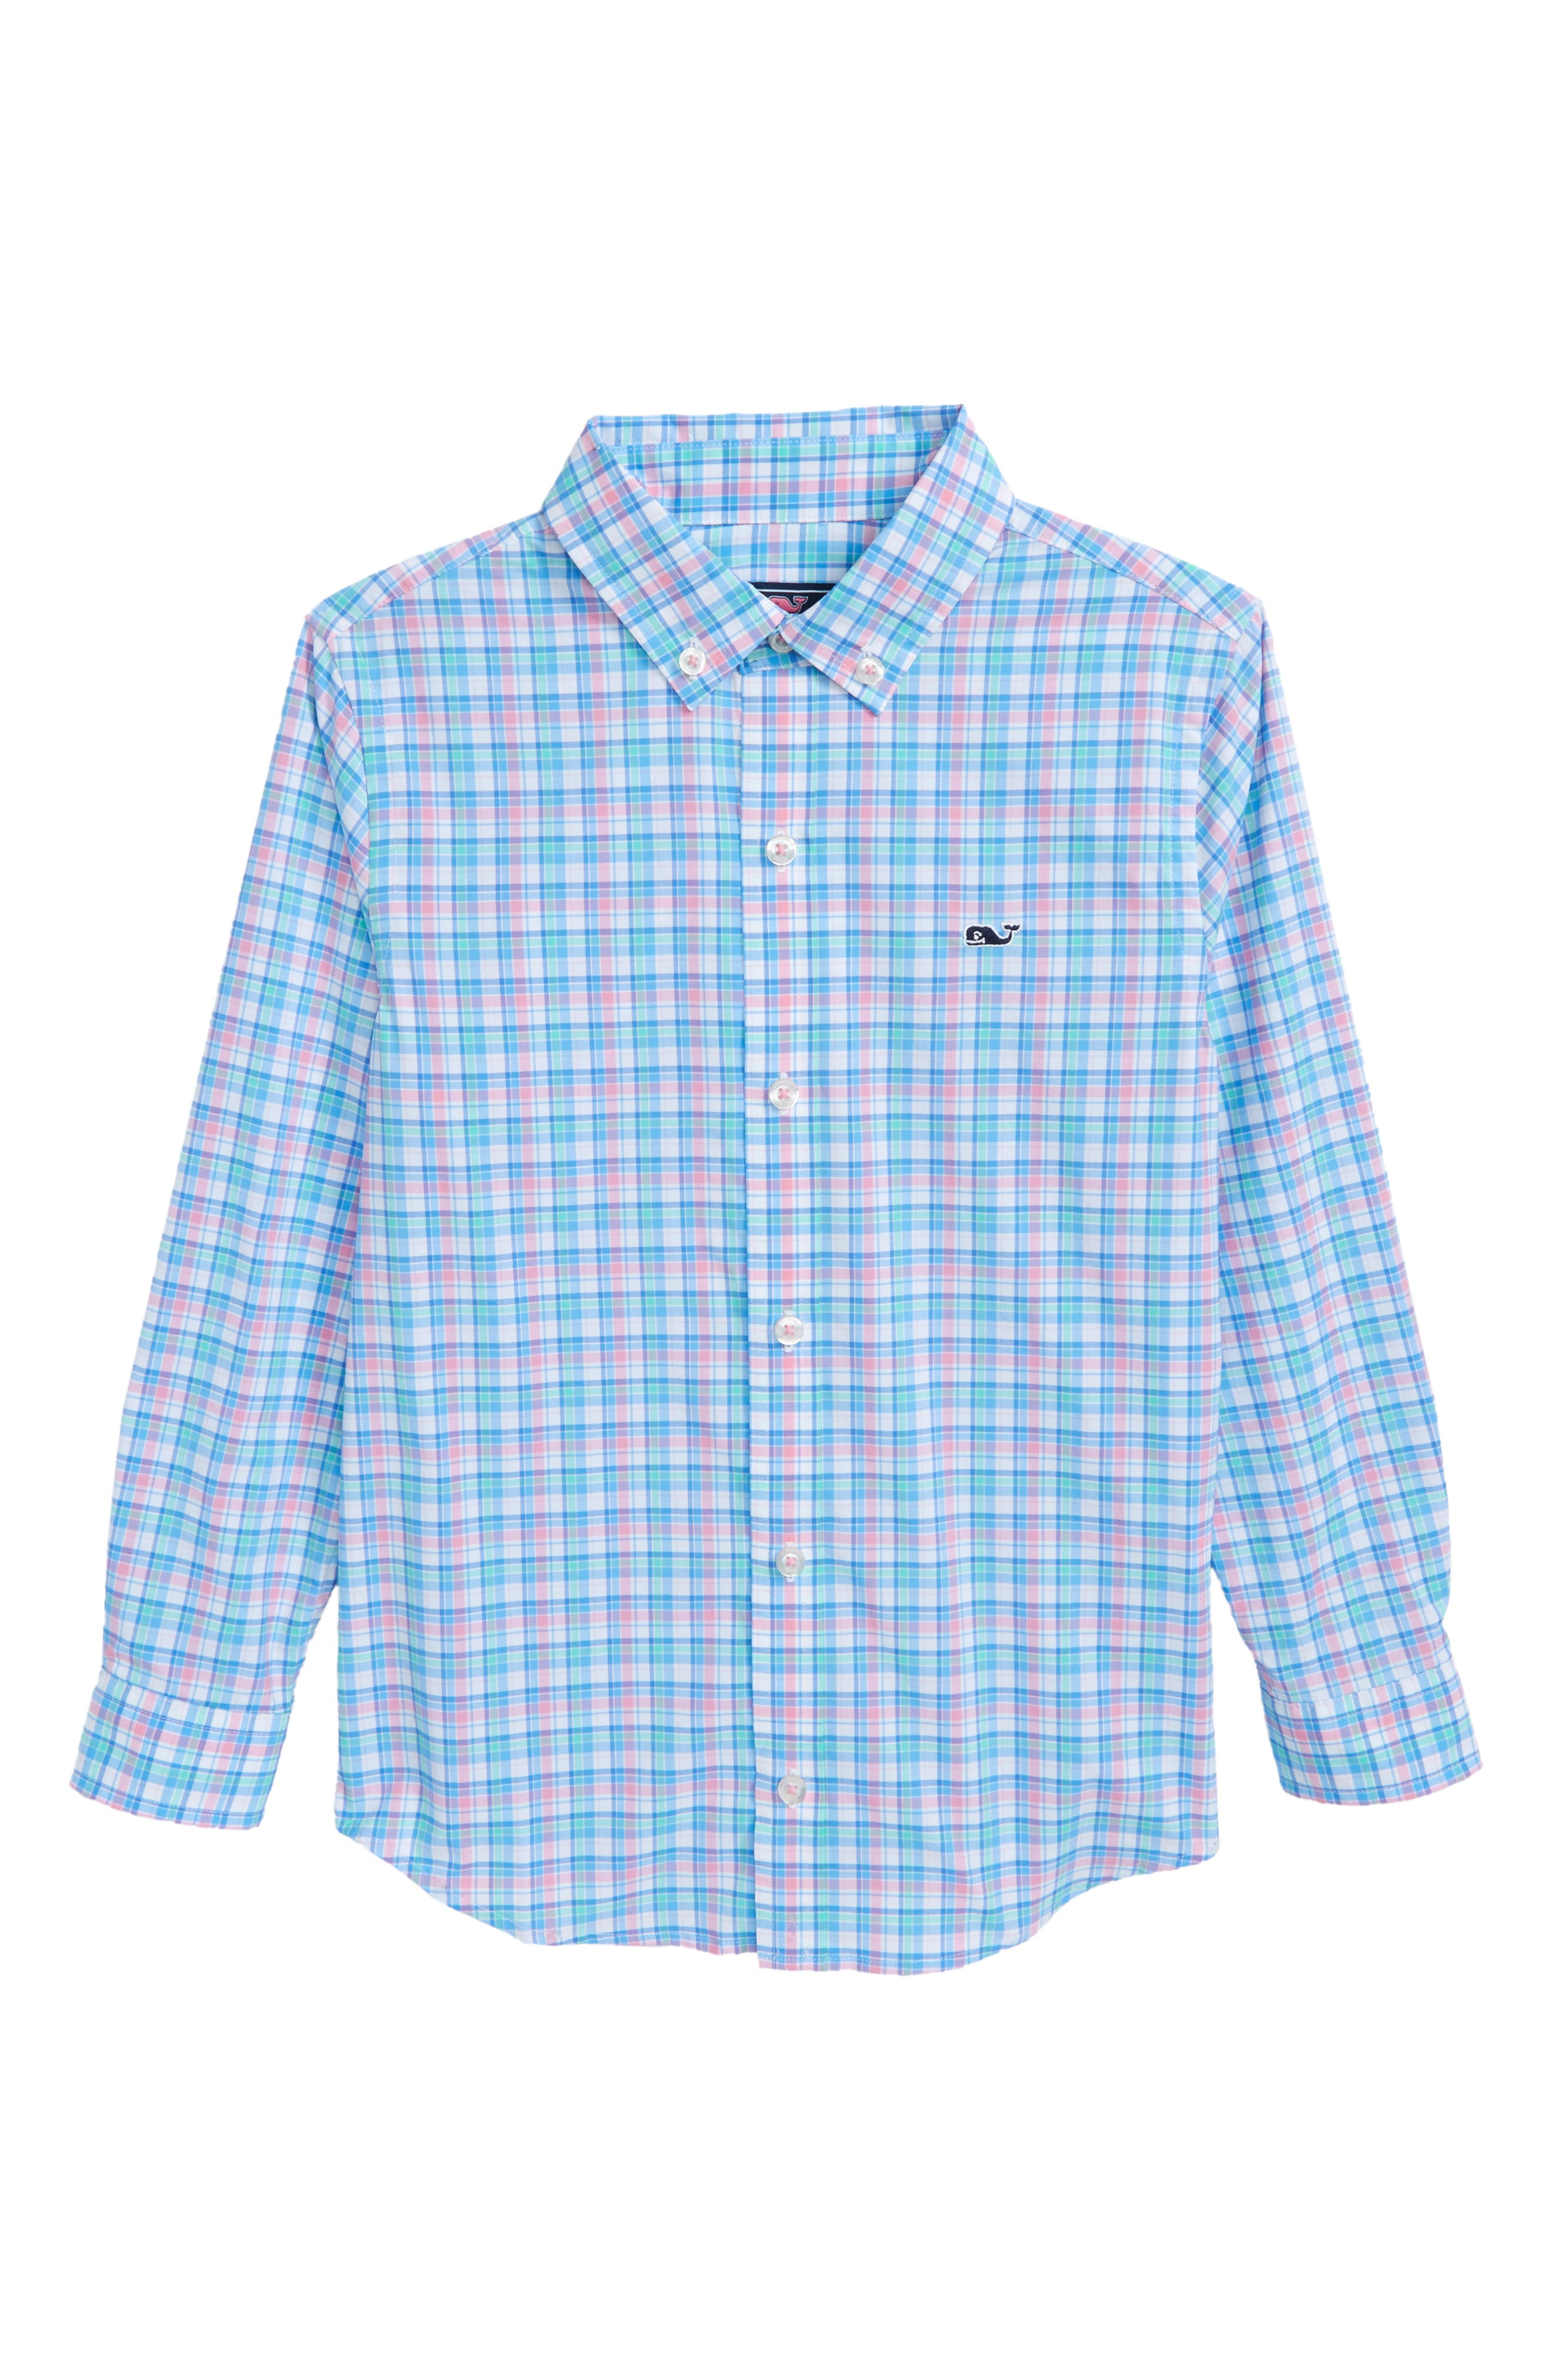 Sheltered Cove Plaid Whale Shirt,                         Main,                         color, Pink